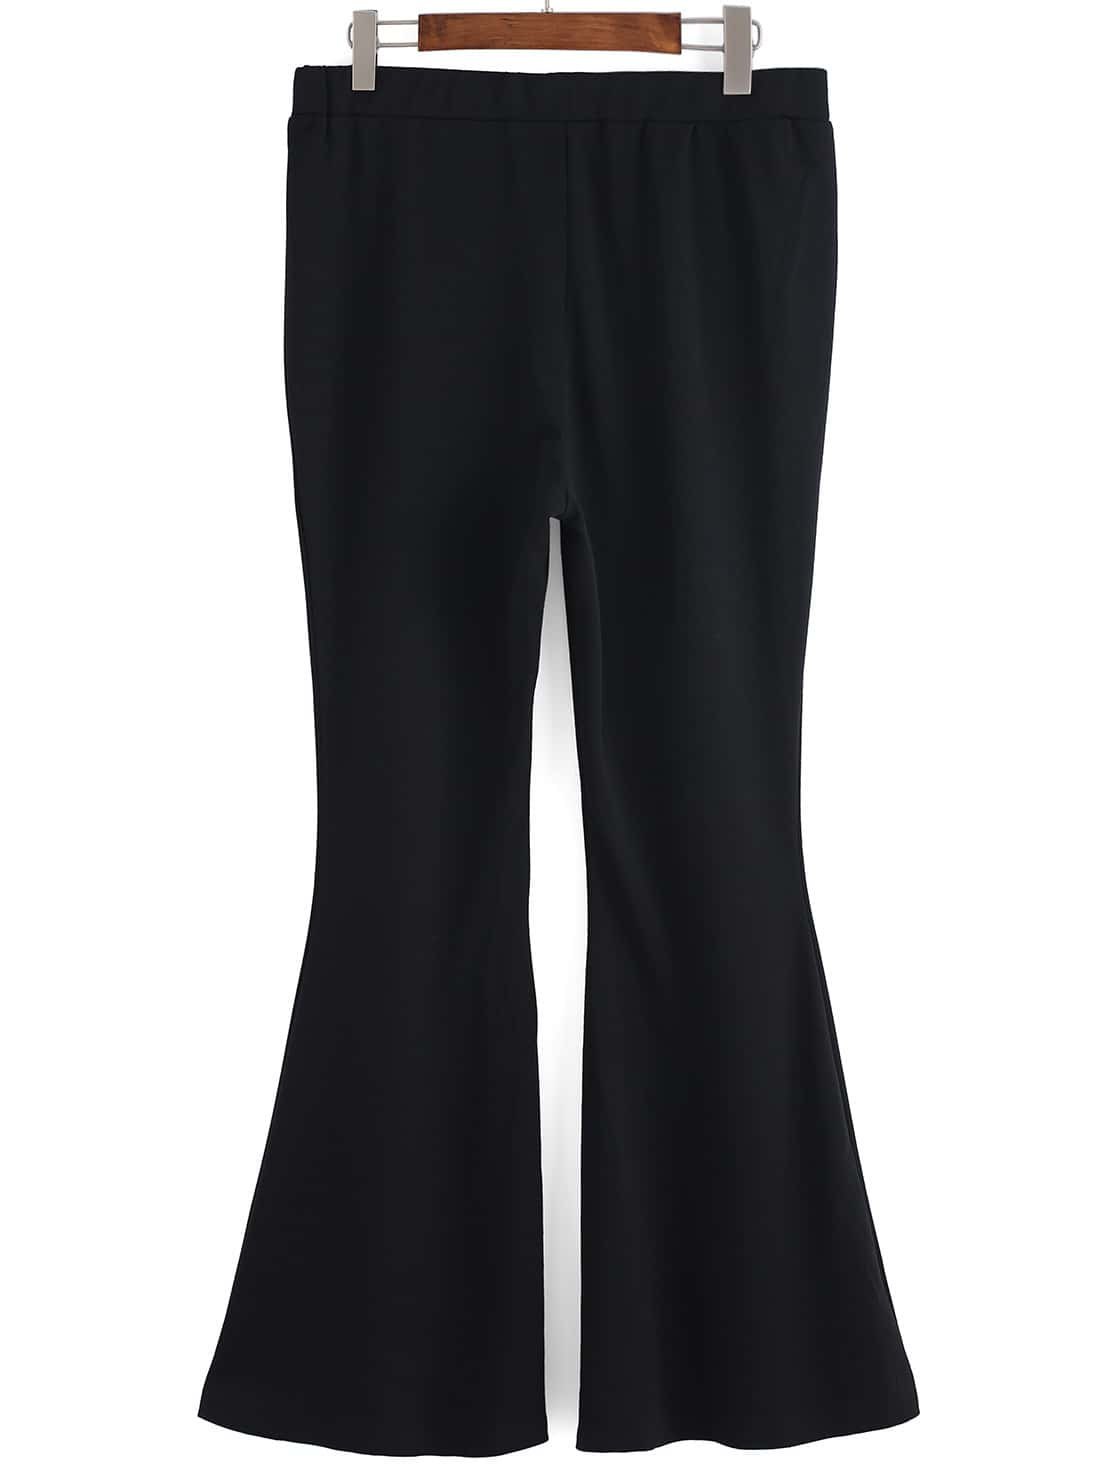 Enjoy free shipping and easy returns every day at Kohl's. Find great deals on Mens Black Elastic Waist Pants at Kohl's today!